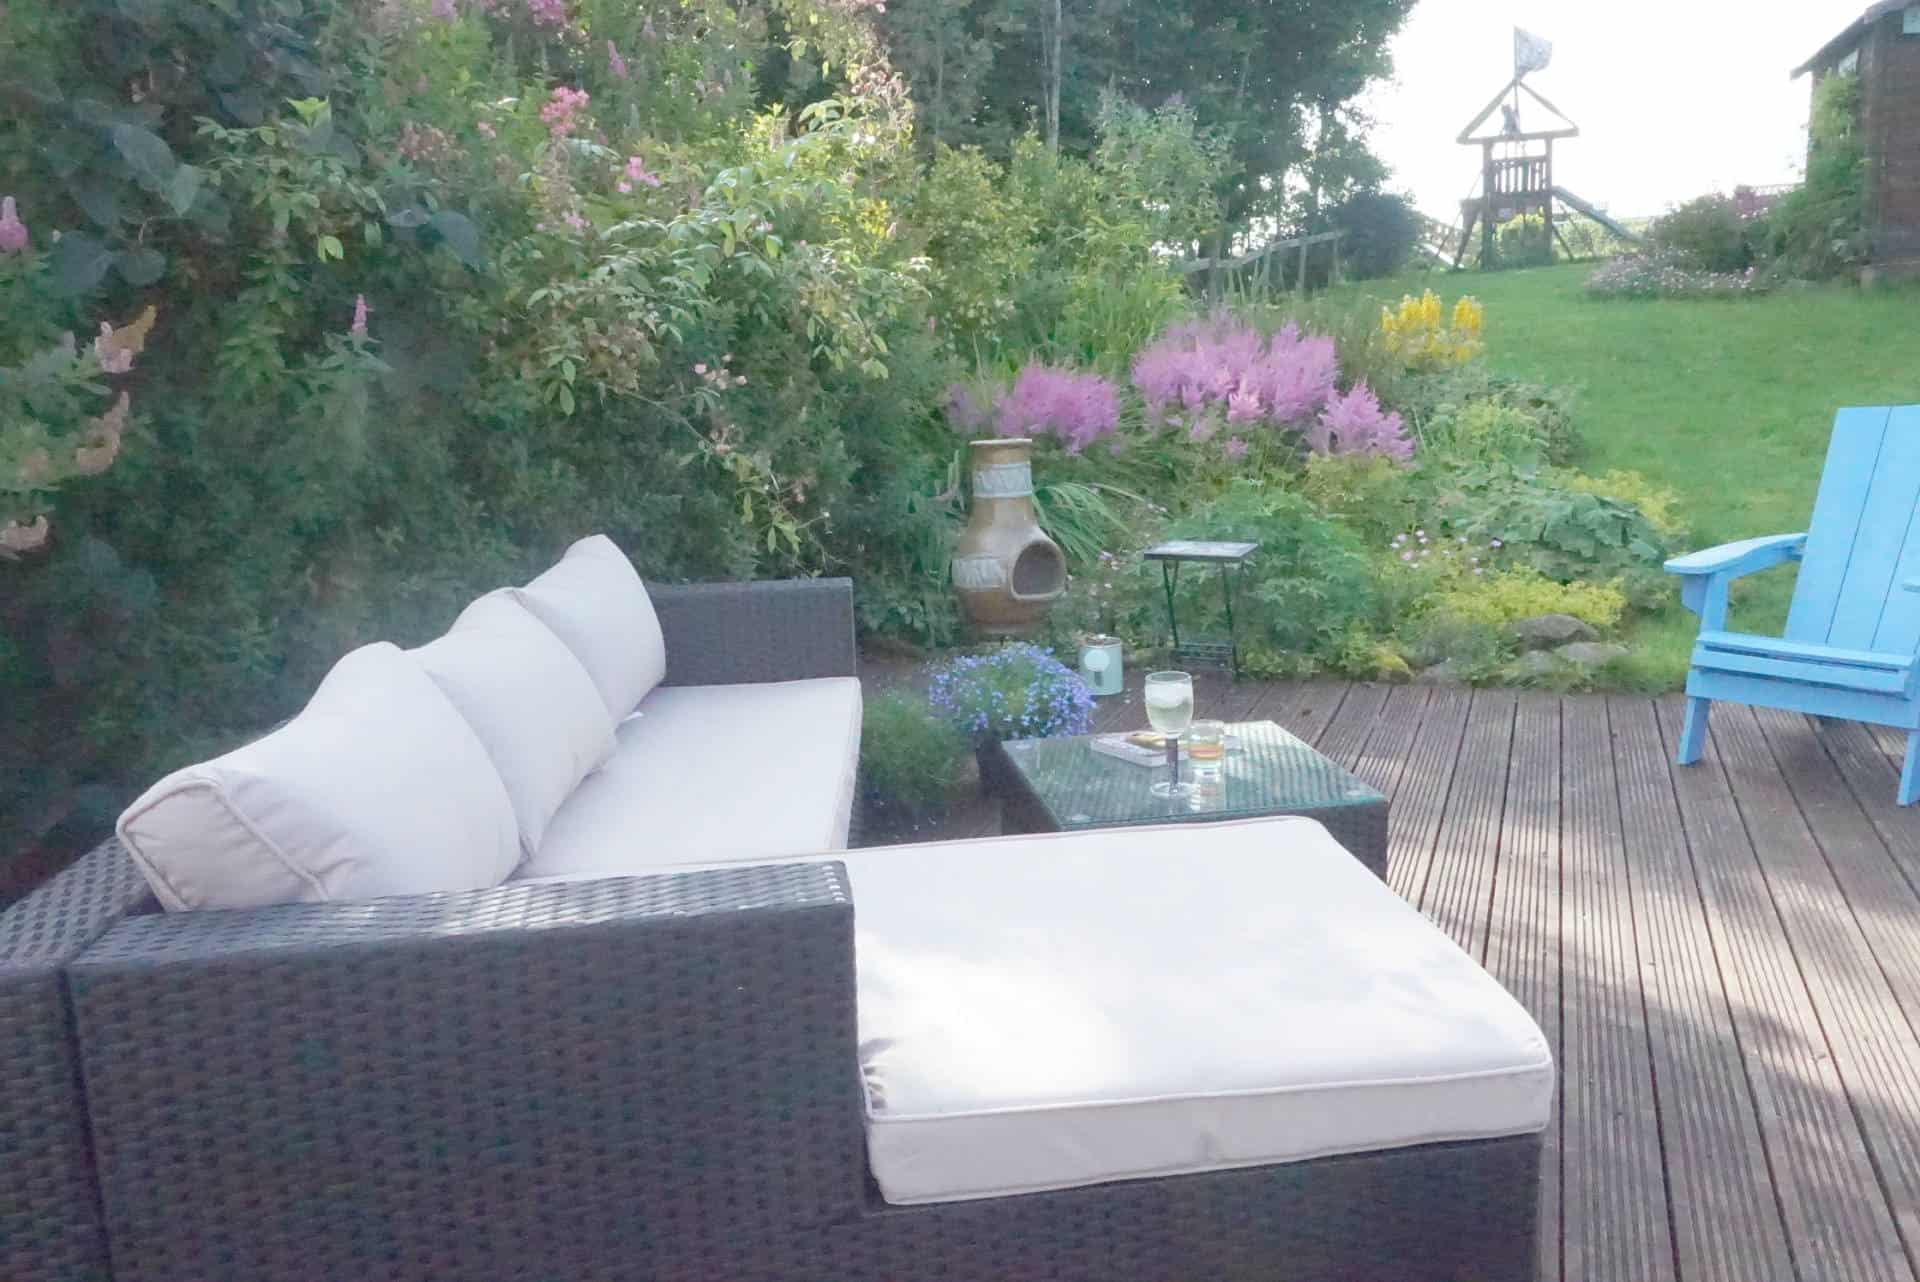 Creating A Family Chill Space In The Garden